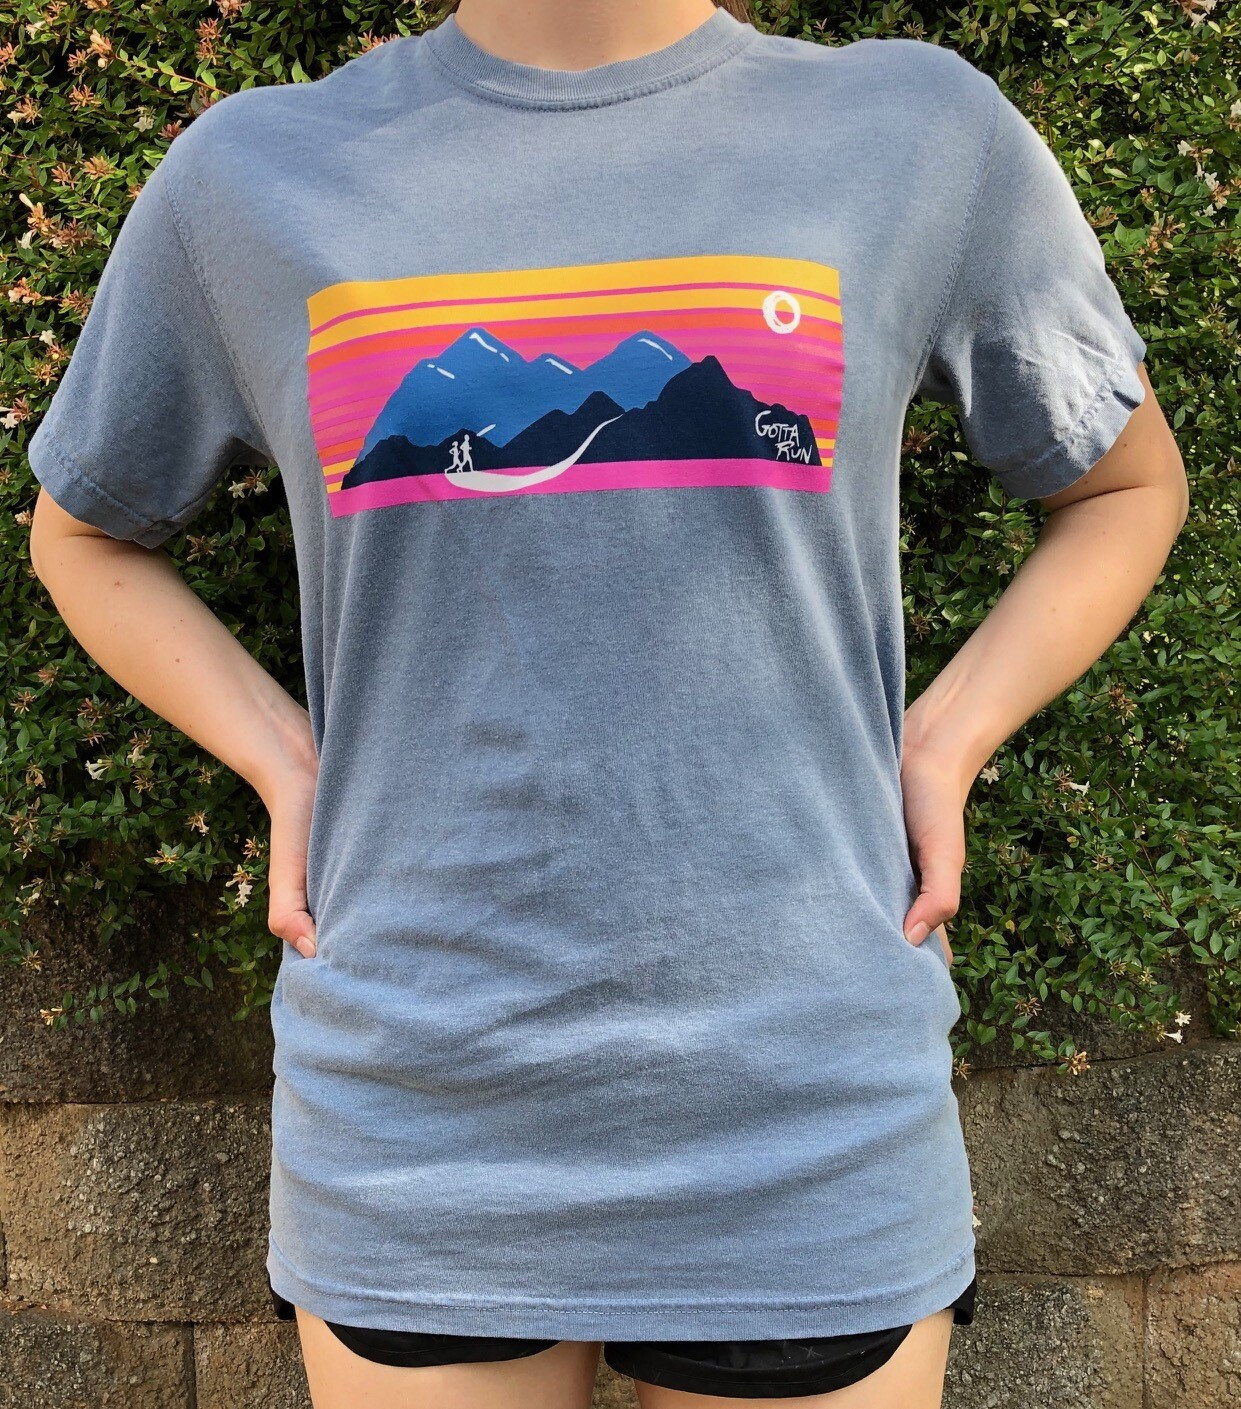 Gotta Run Lifestyle Mountain Sunset Comfort Color 100% cotton T-shirt - Blue Jean - Size Medium